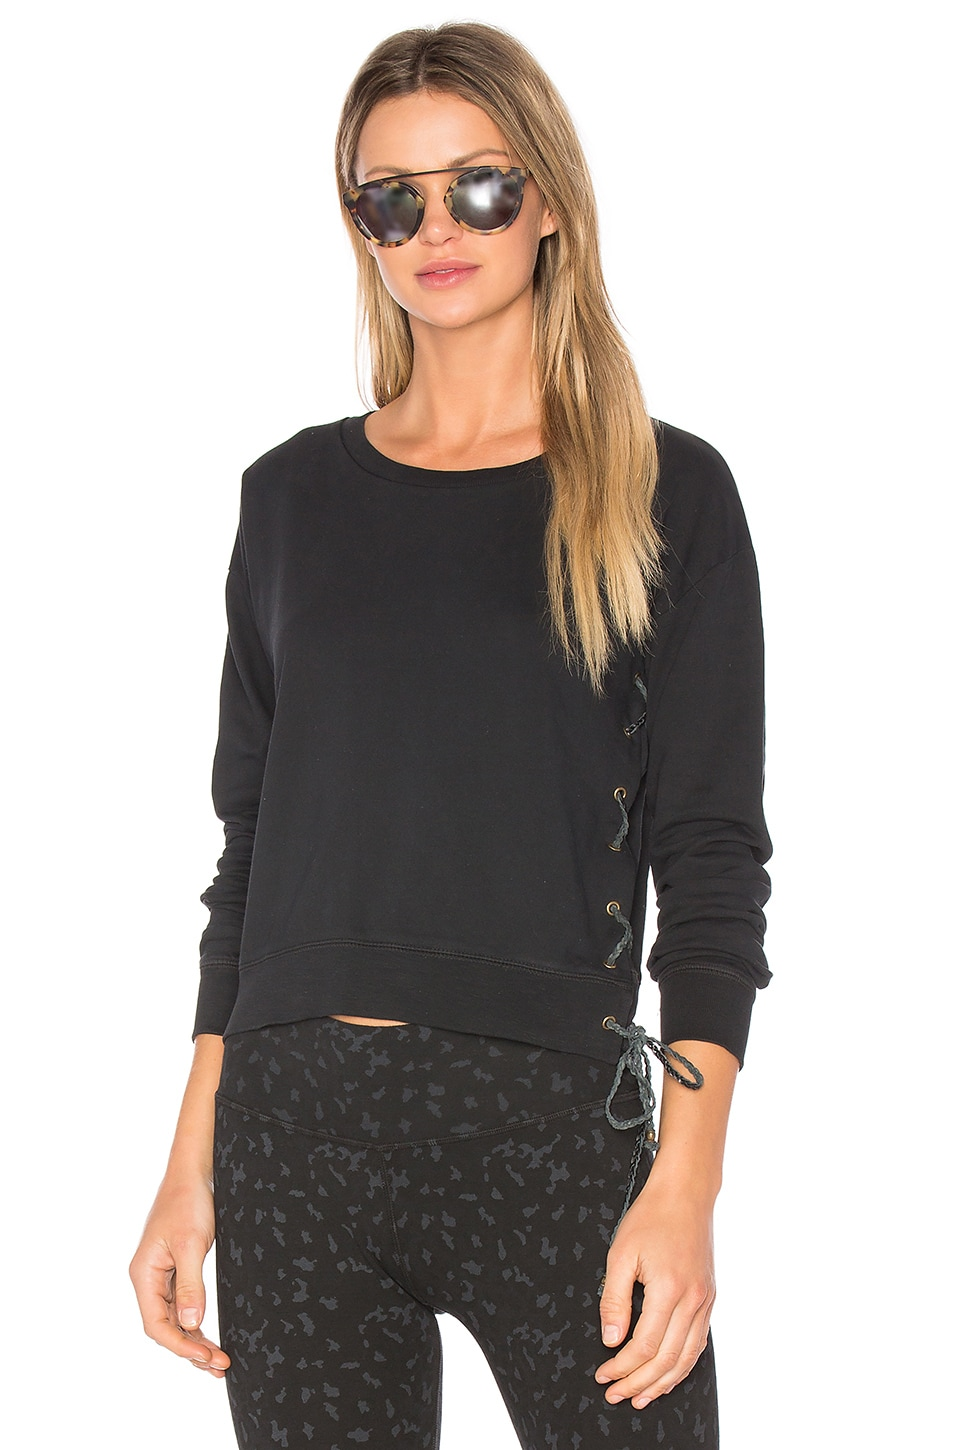 Lace Up Crop Sweatshirt by Ragdoll